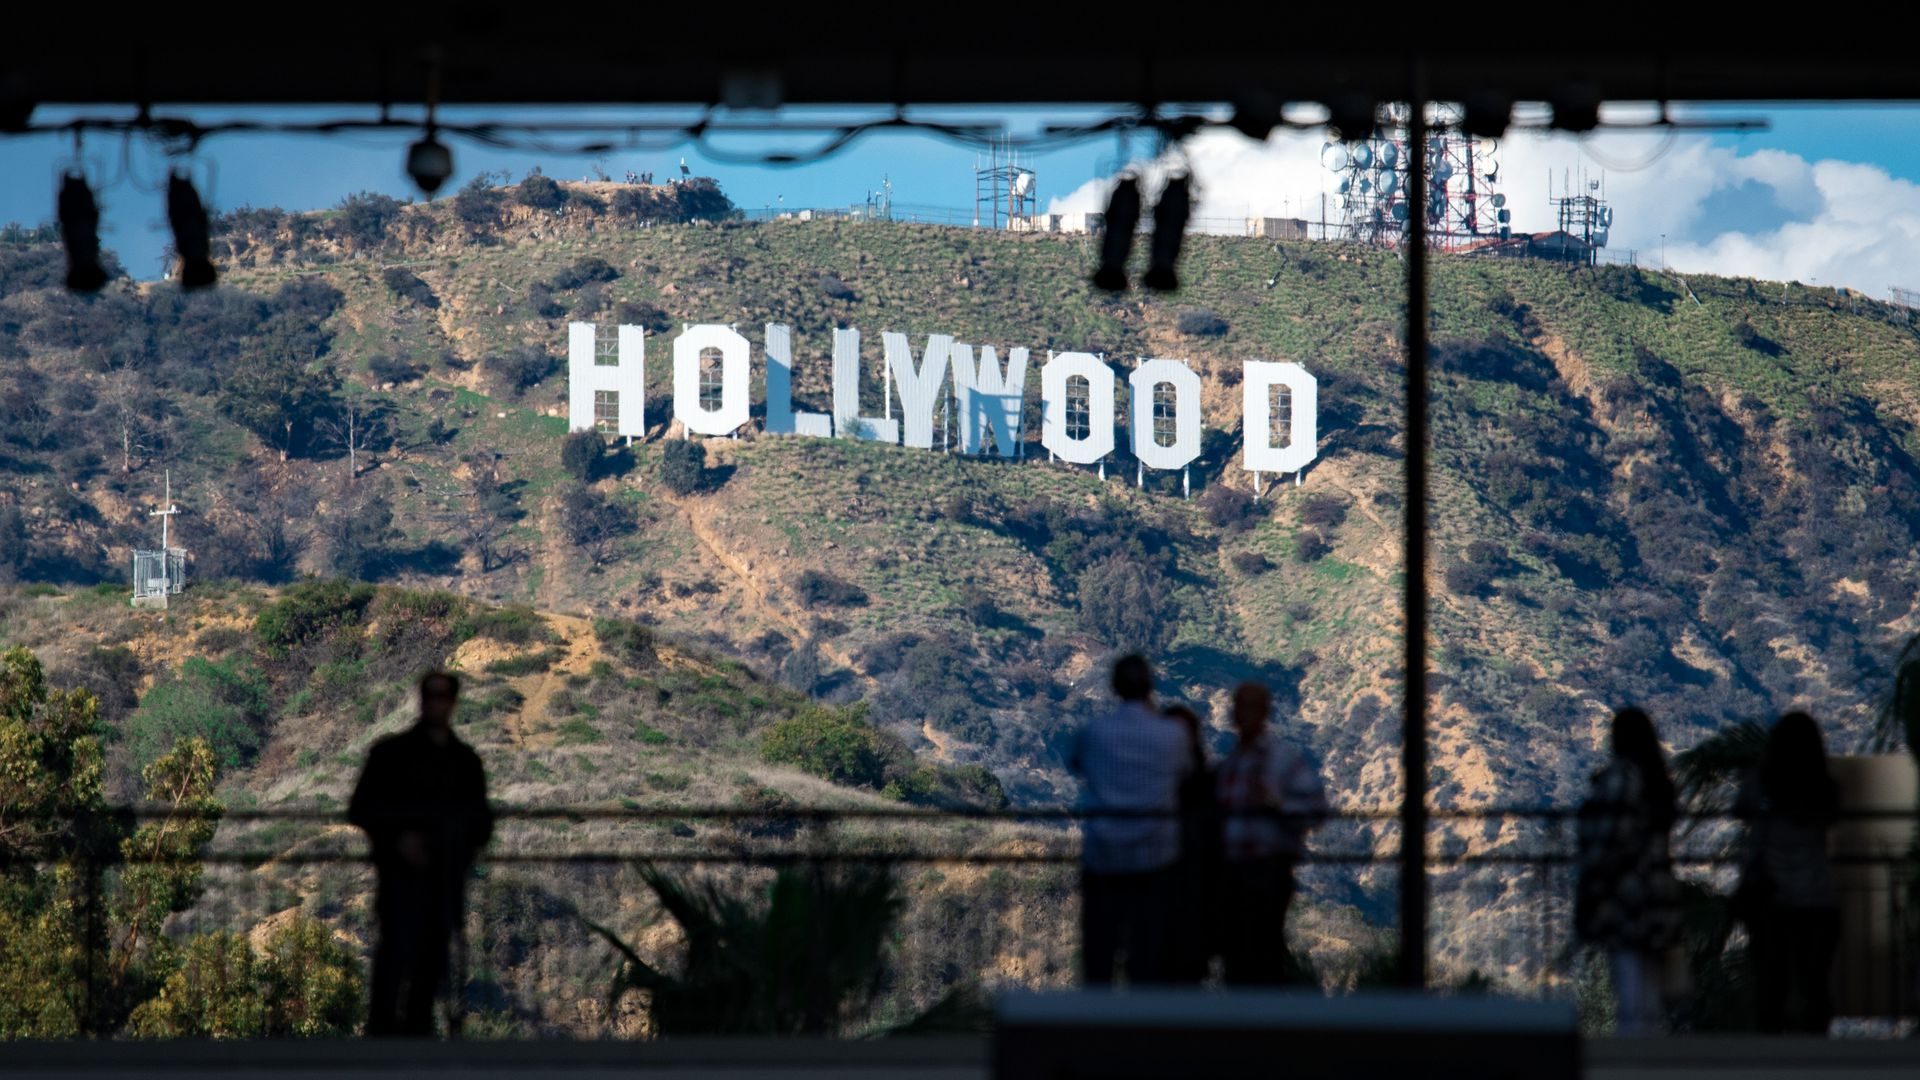 In this image, the Hollywood sign is visible in the background as a man stands and looks at it.